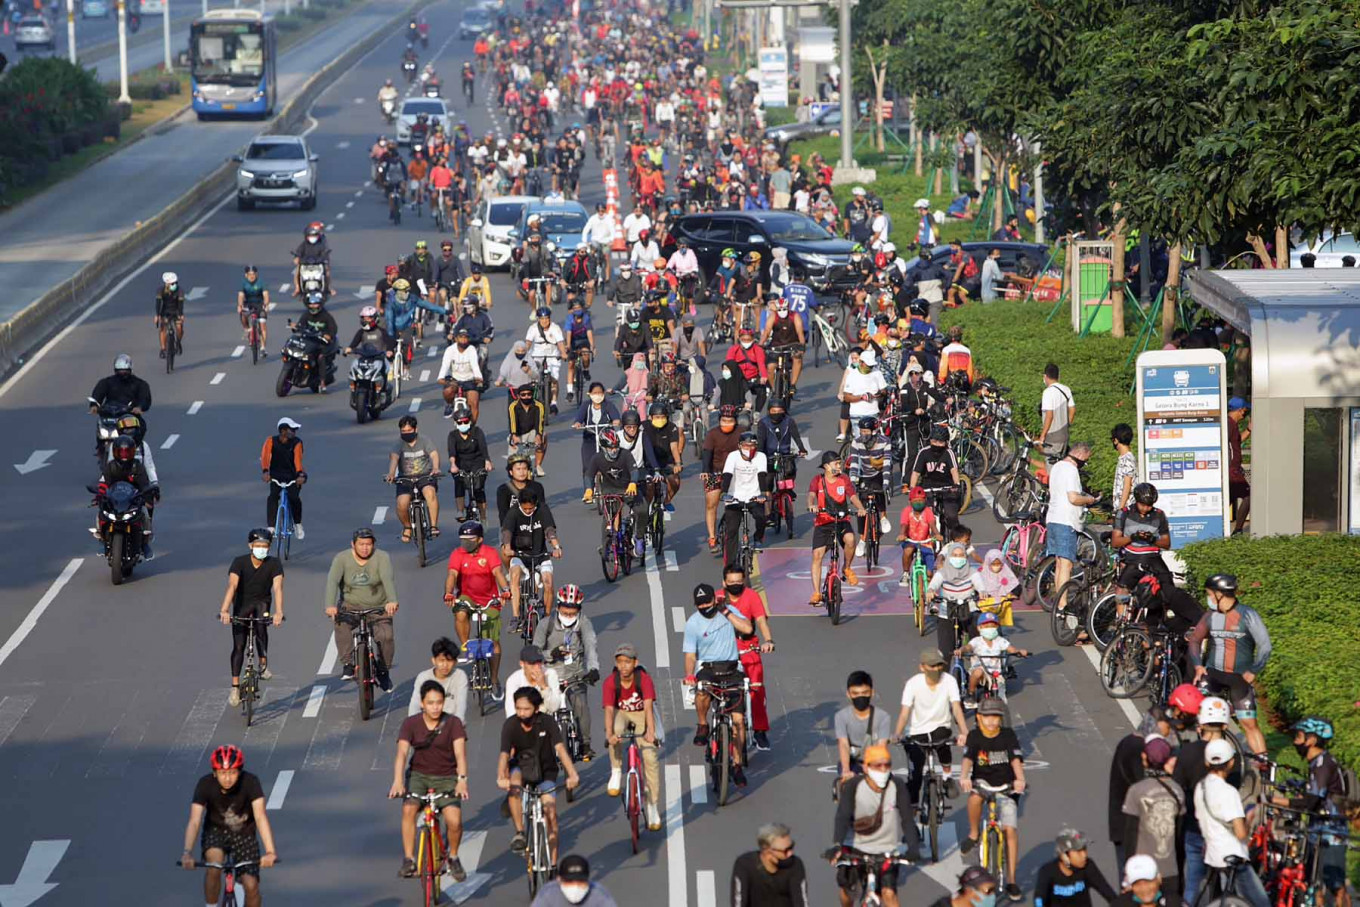 Transportation Ministry denies rumor about taxing cyclists